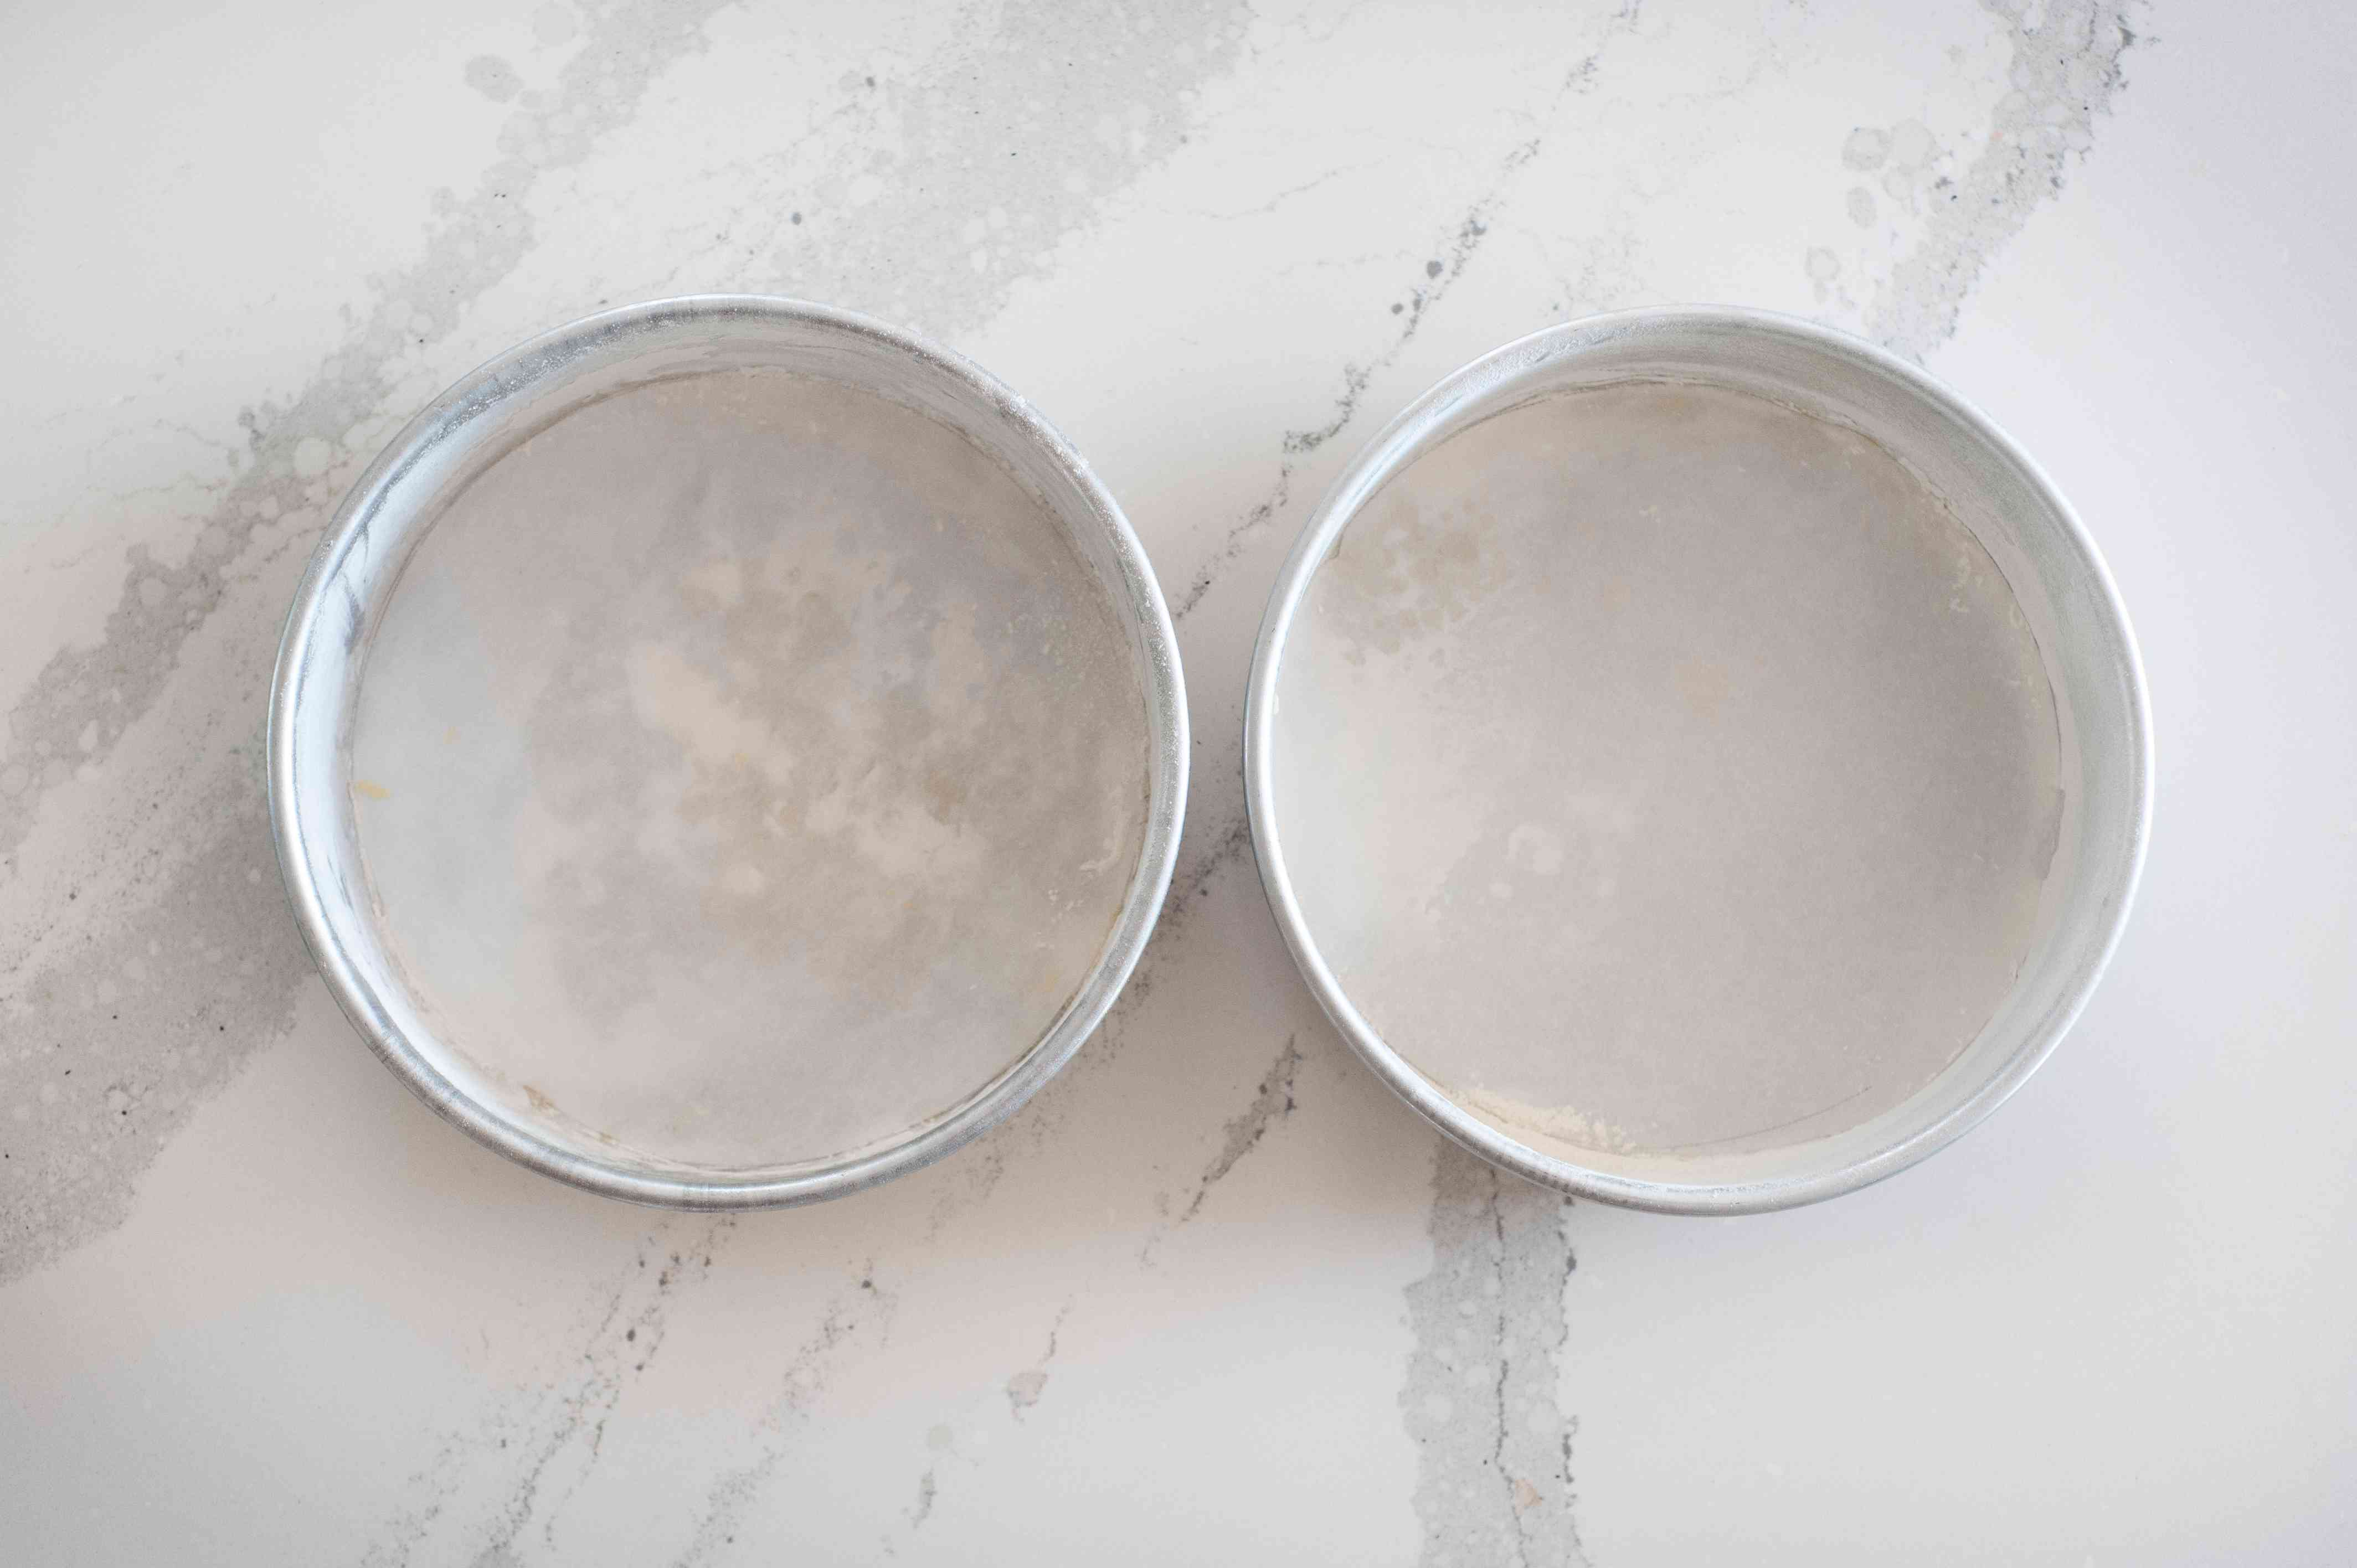 Two cake pans lined with parchment to make Fresh Strawberry Layer Cake with Seven-Minute Icing.